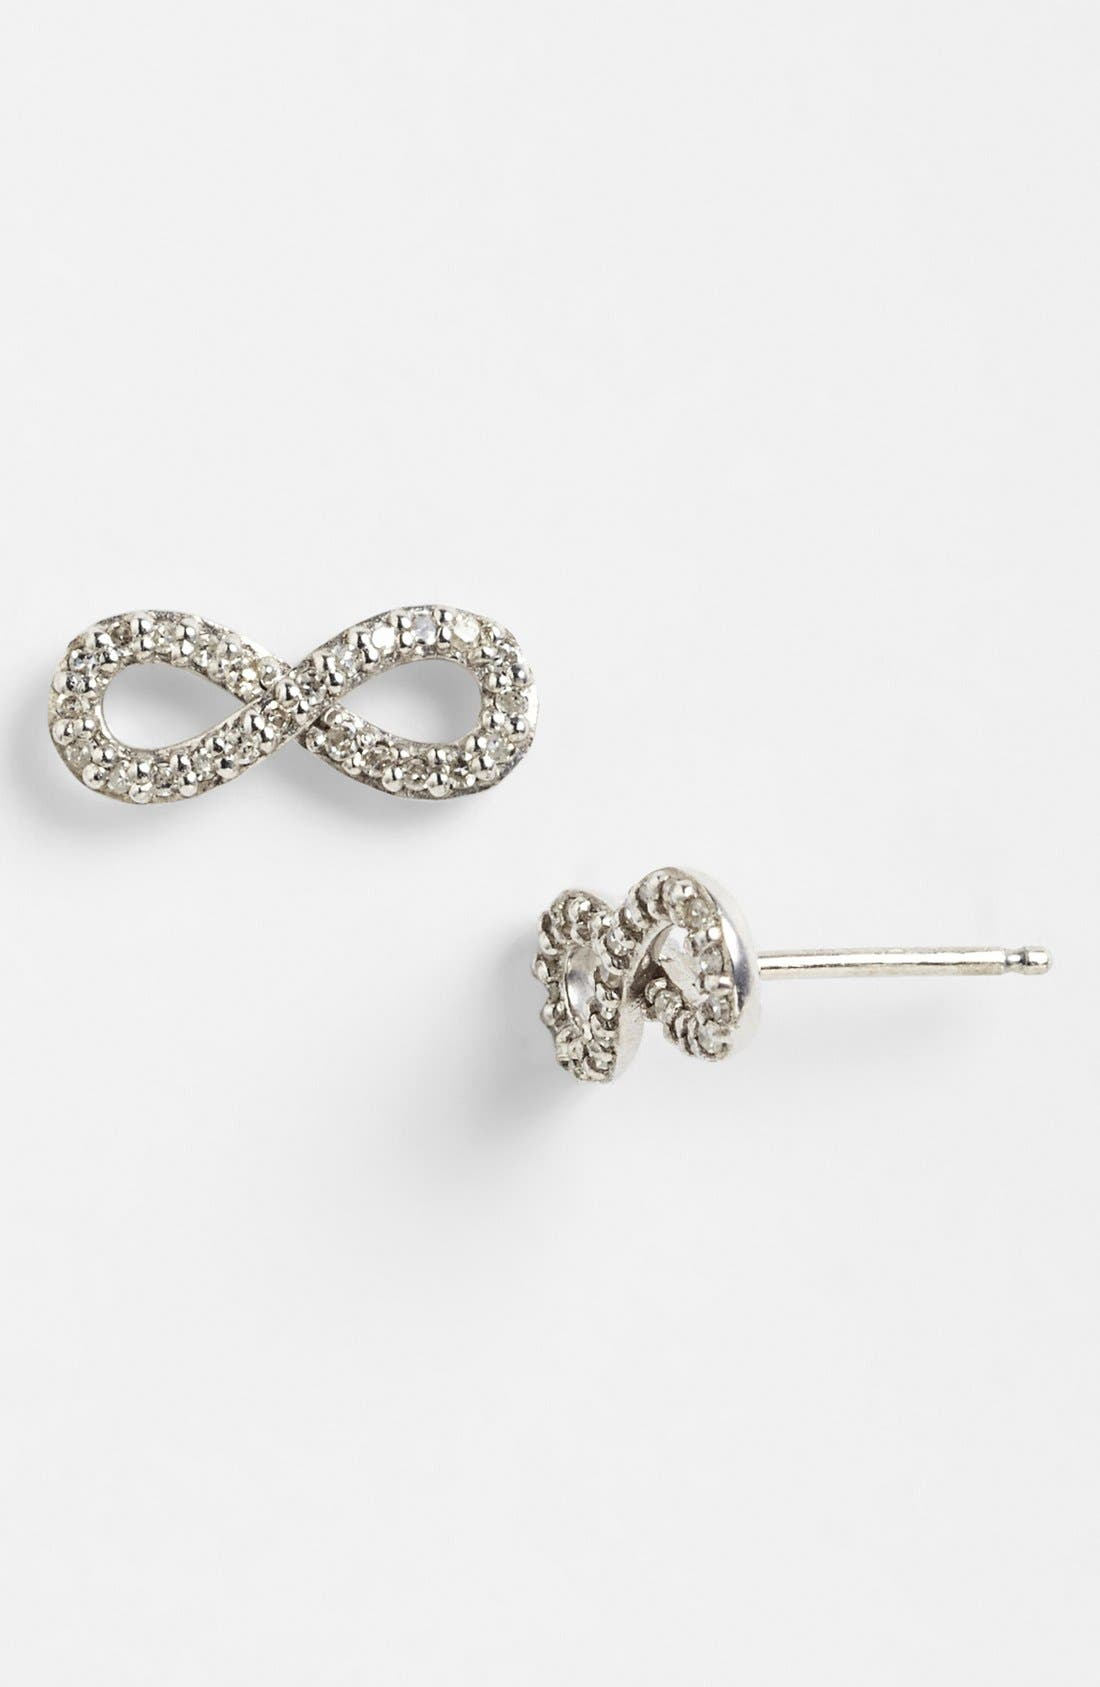 Alternate Image 1 Selected - Adina Reyter Pavé Diamond Infinity Symbol Stud Earrings (Online Only)